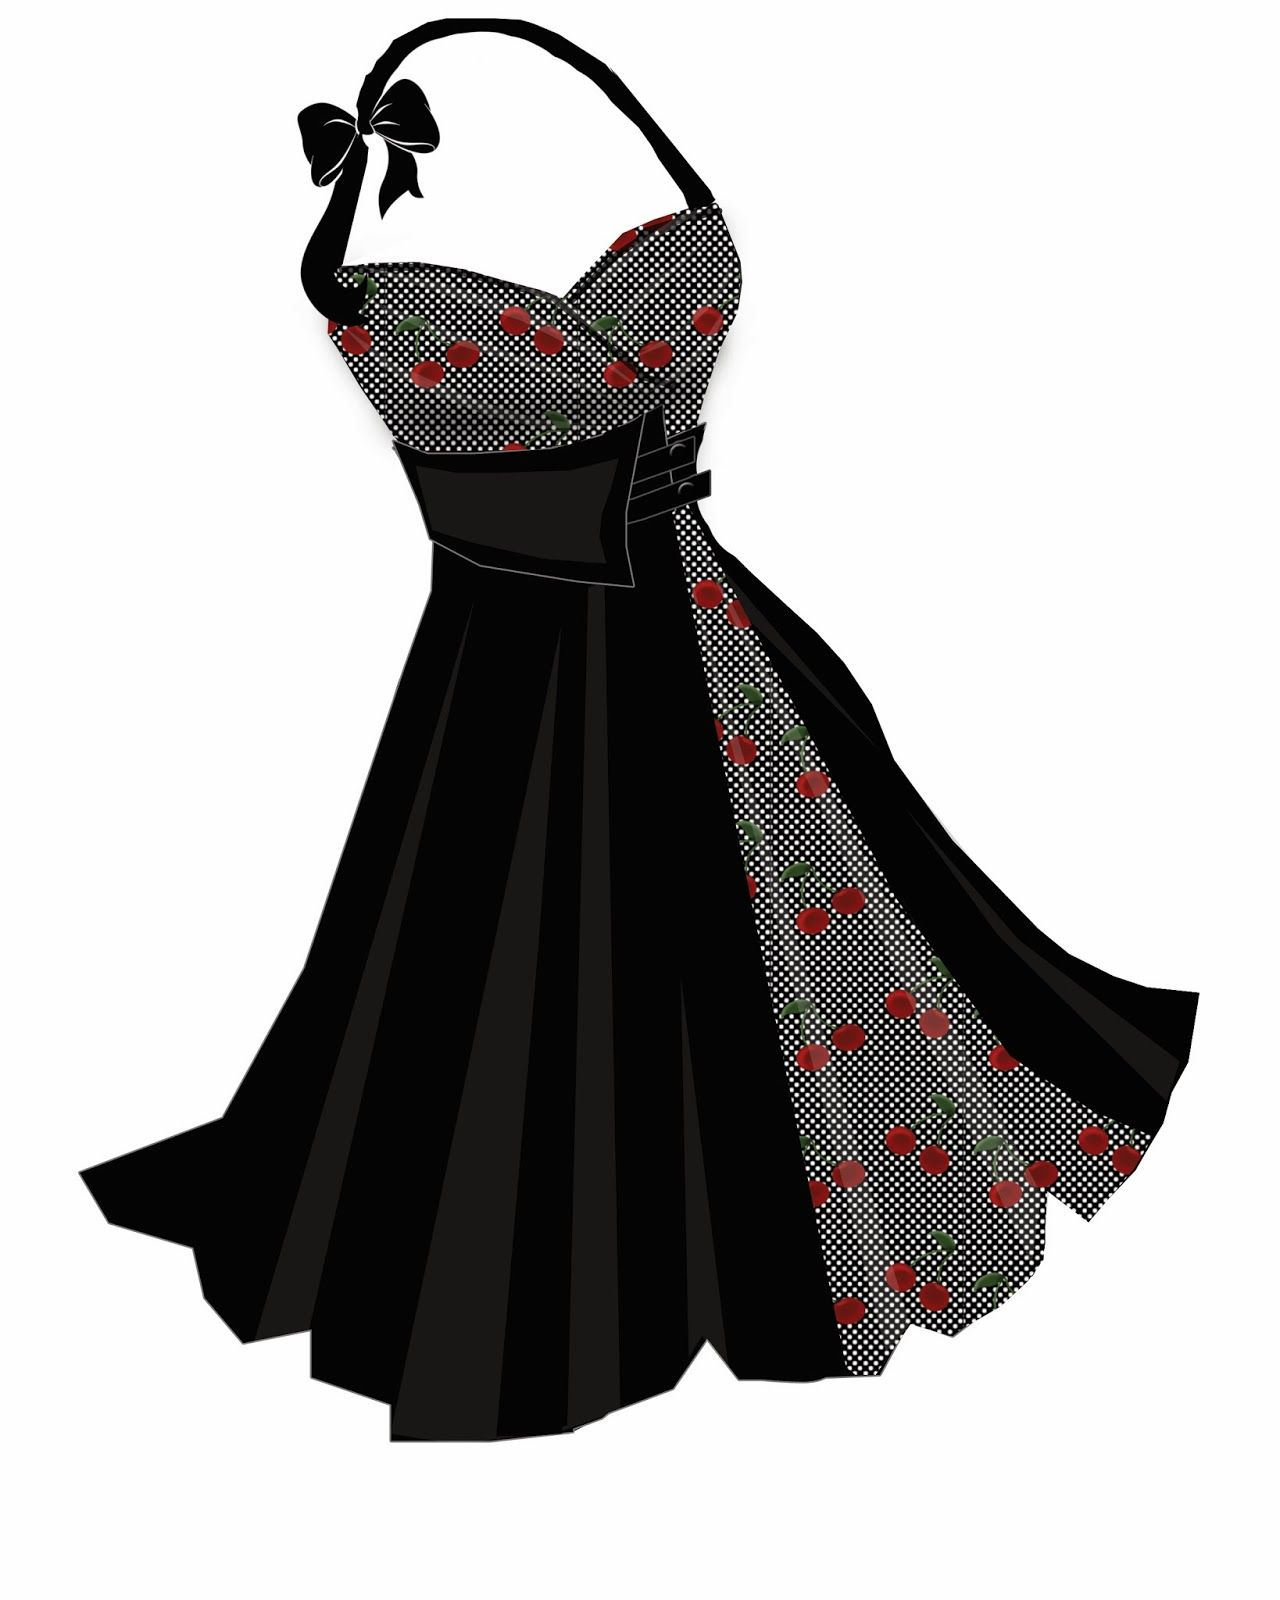 blueberry hill fashions rockabilly retro dress fashions style pinterest rockabella. Black Bedroom Furniture Sets. Home Design Ideas